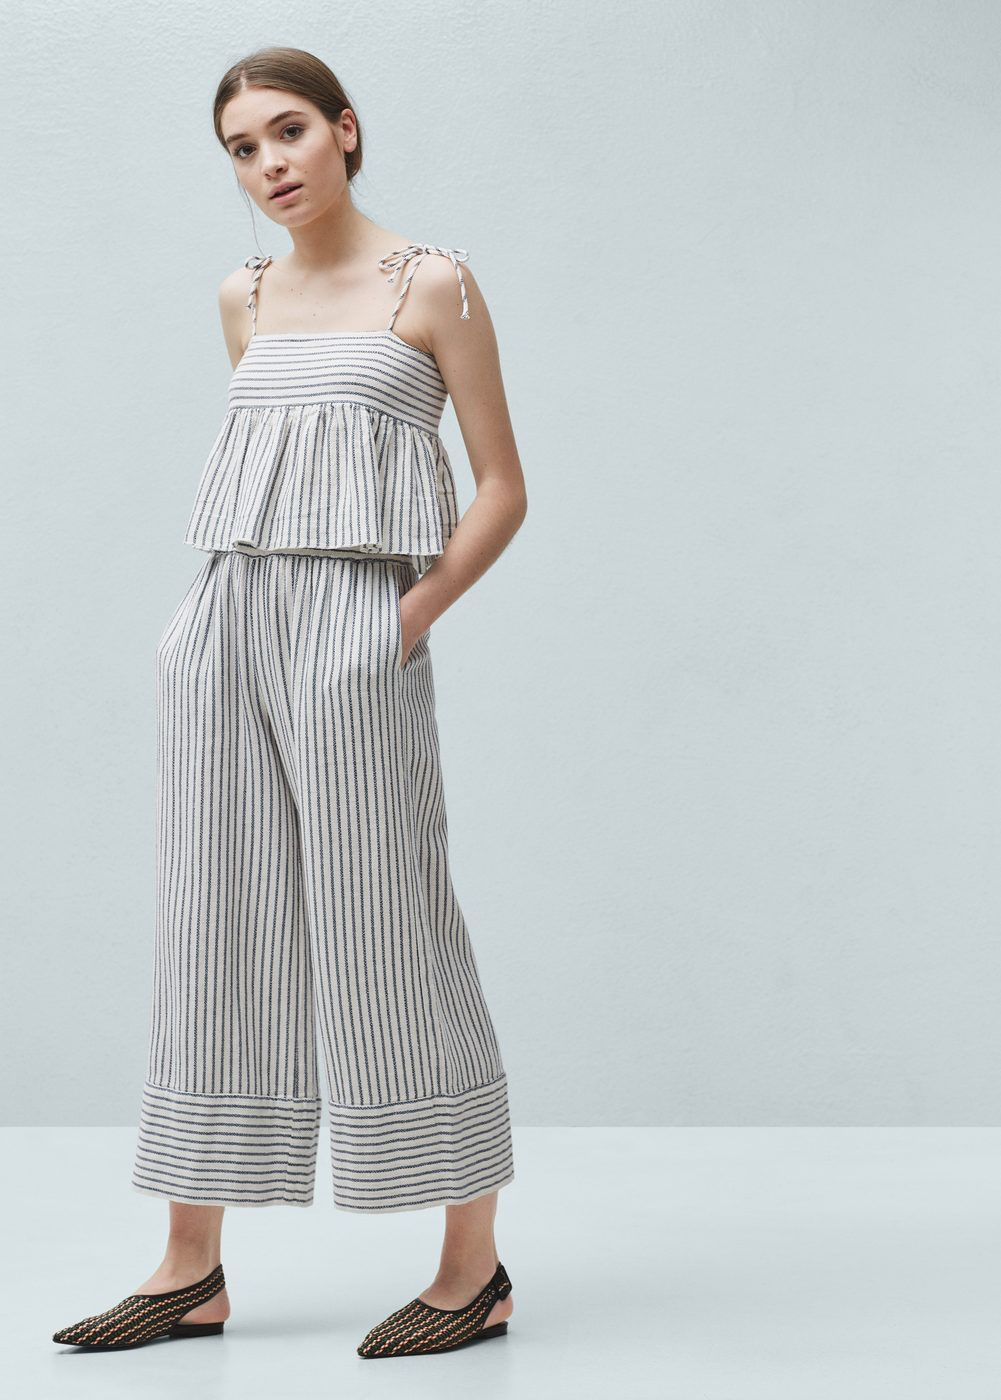 bd6c717dadb0 Mango Striped Cotton-Blend Top ( 39.99) and Striped Cotton Trousers ( 59.99)